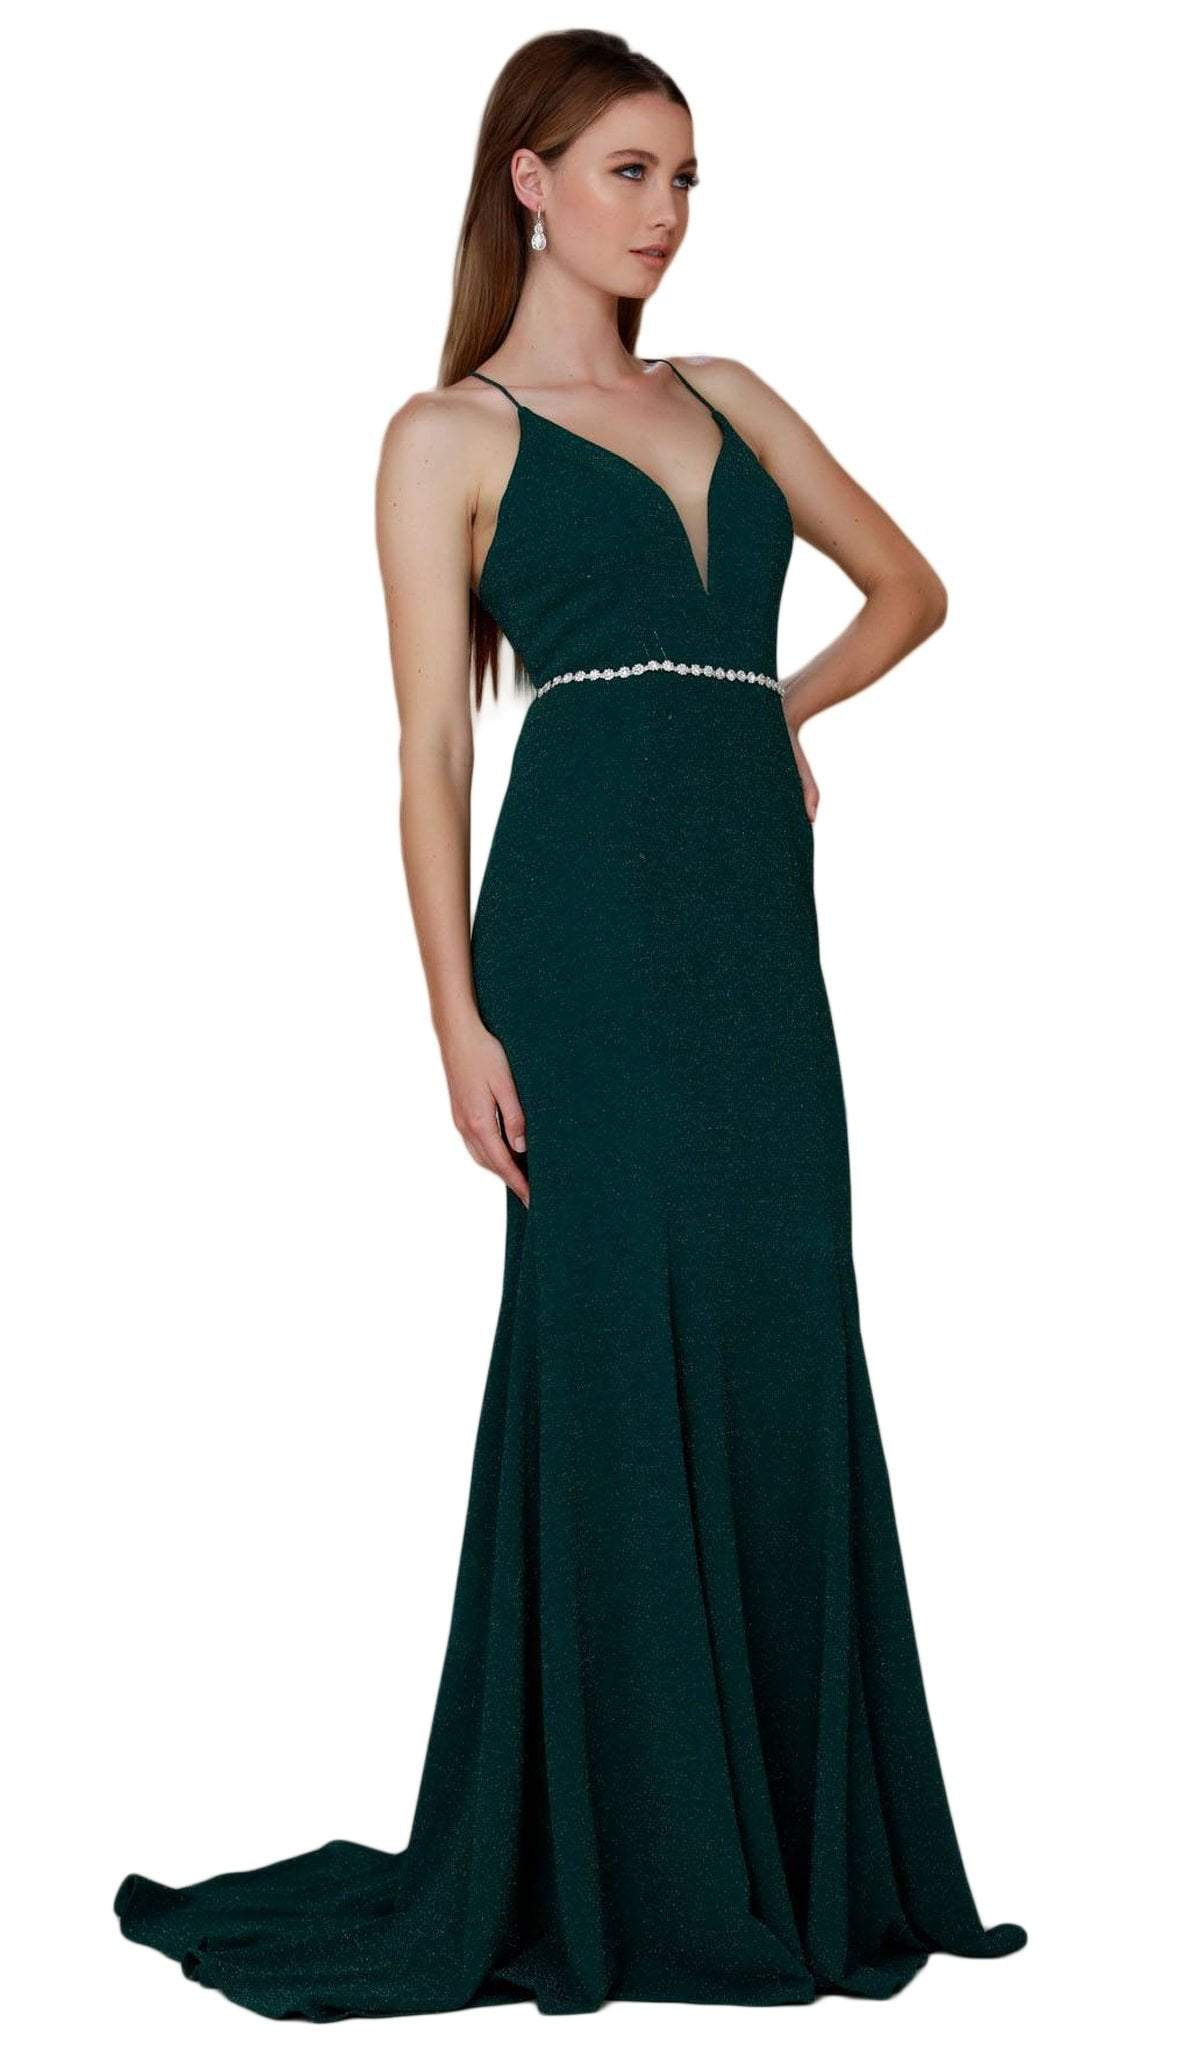 Nox Anabel - Plunging V-Neck Gown N160SC